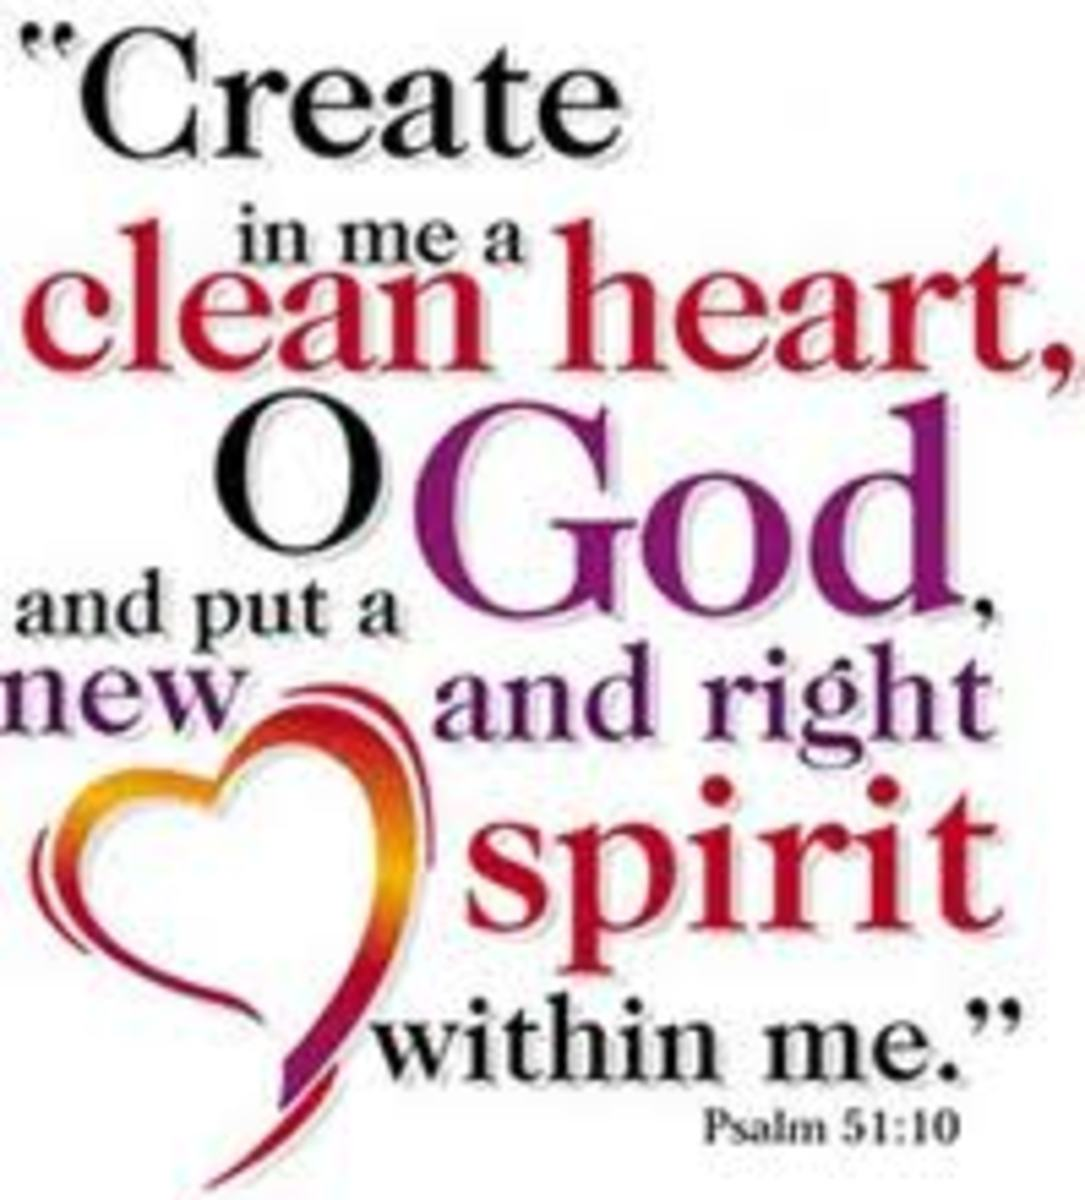 This is my daily prayer to You Lord!